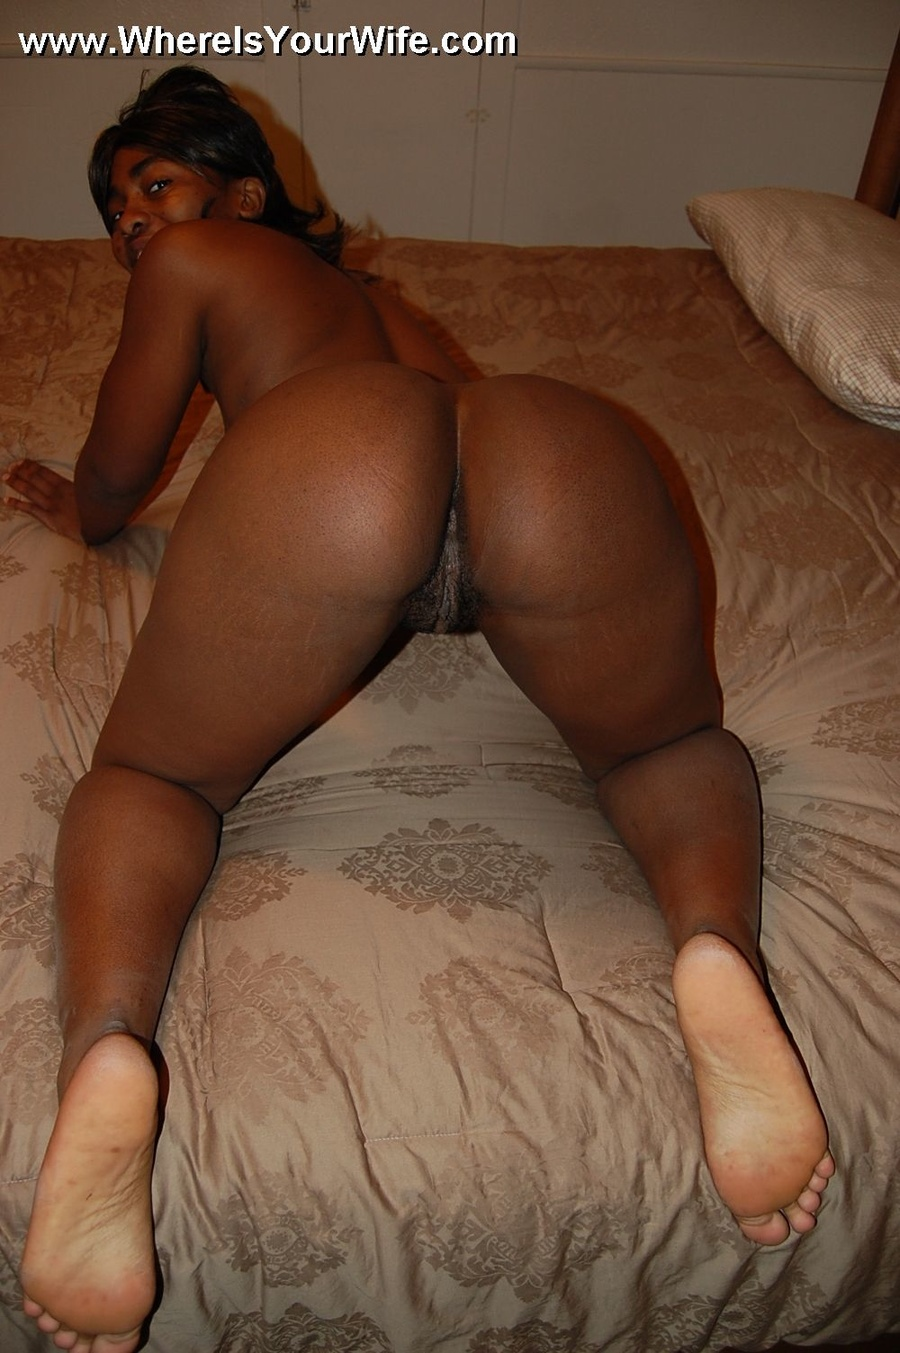 Perhaps Big booty black girl nude selfie